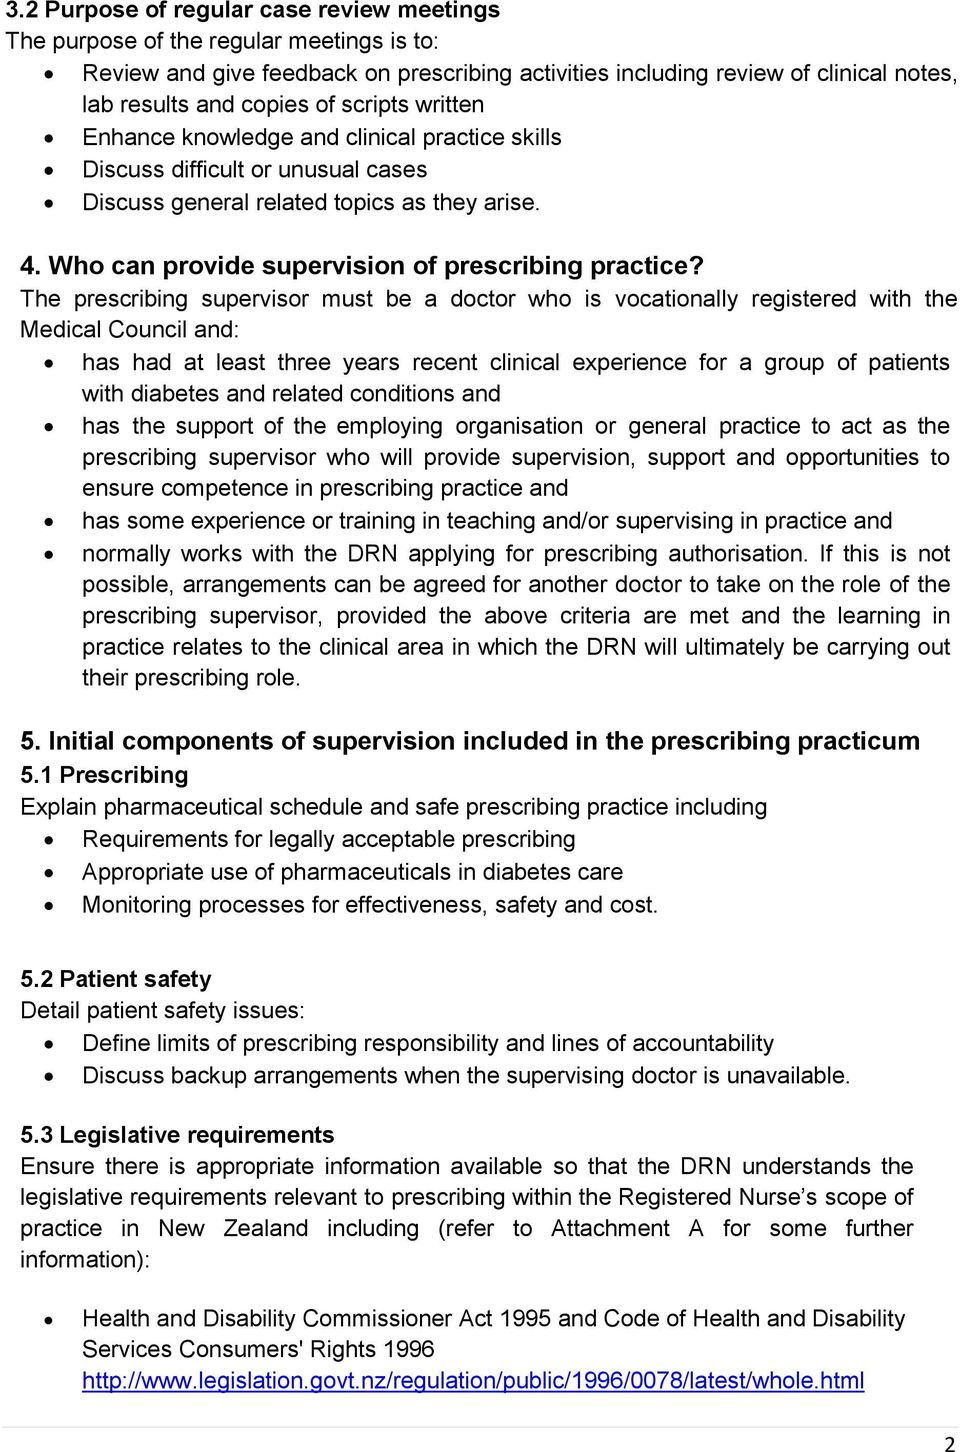 The prescribing supervisor must be a doctor who is vocationally registered with the Medical Council and: has had at least three years recent clinical experience for a group of patients with diabetes